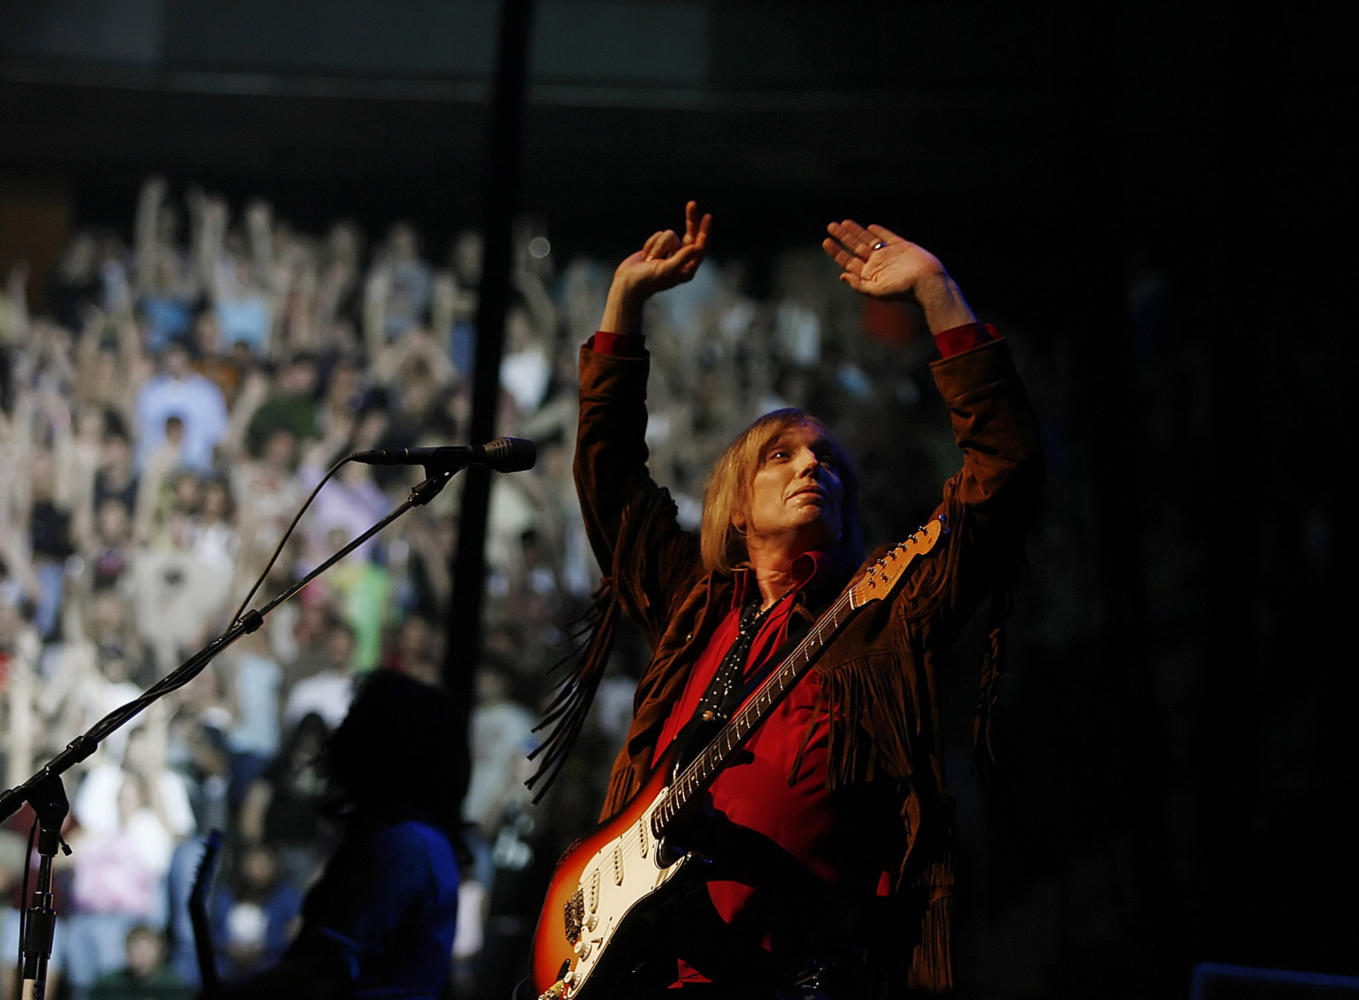 Rock legend Tom Petty jams for a sold out crowd, June 26, 2006, at Xcel Center in St. Paul, Minn. (Jerry Holt/Minneapolis Star Tribune/TNS)